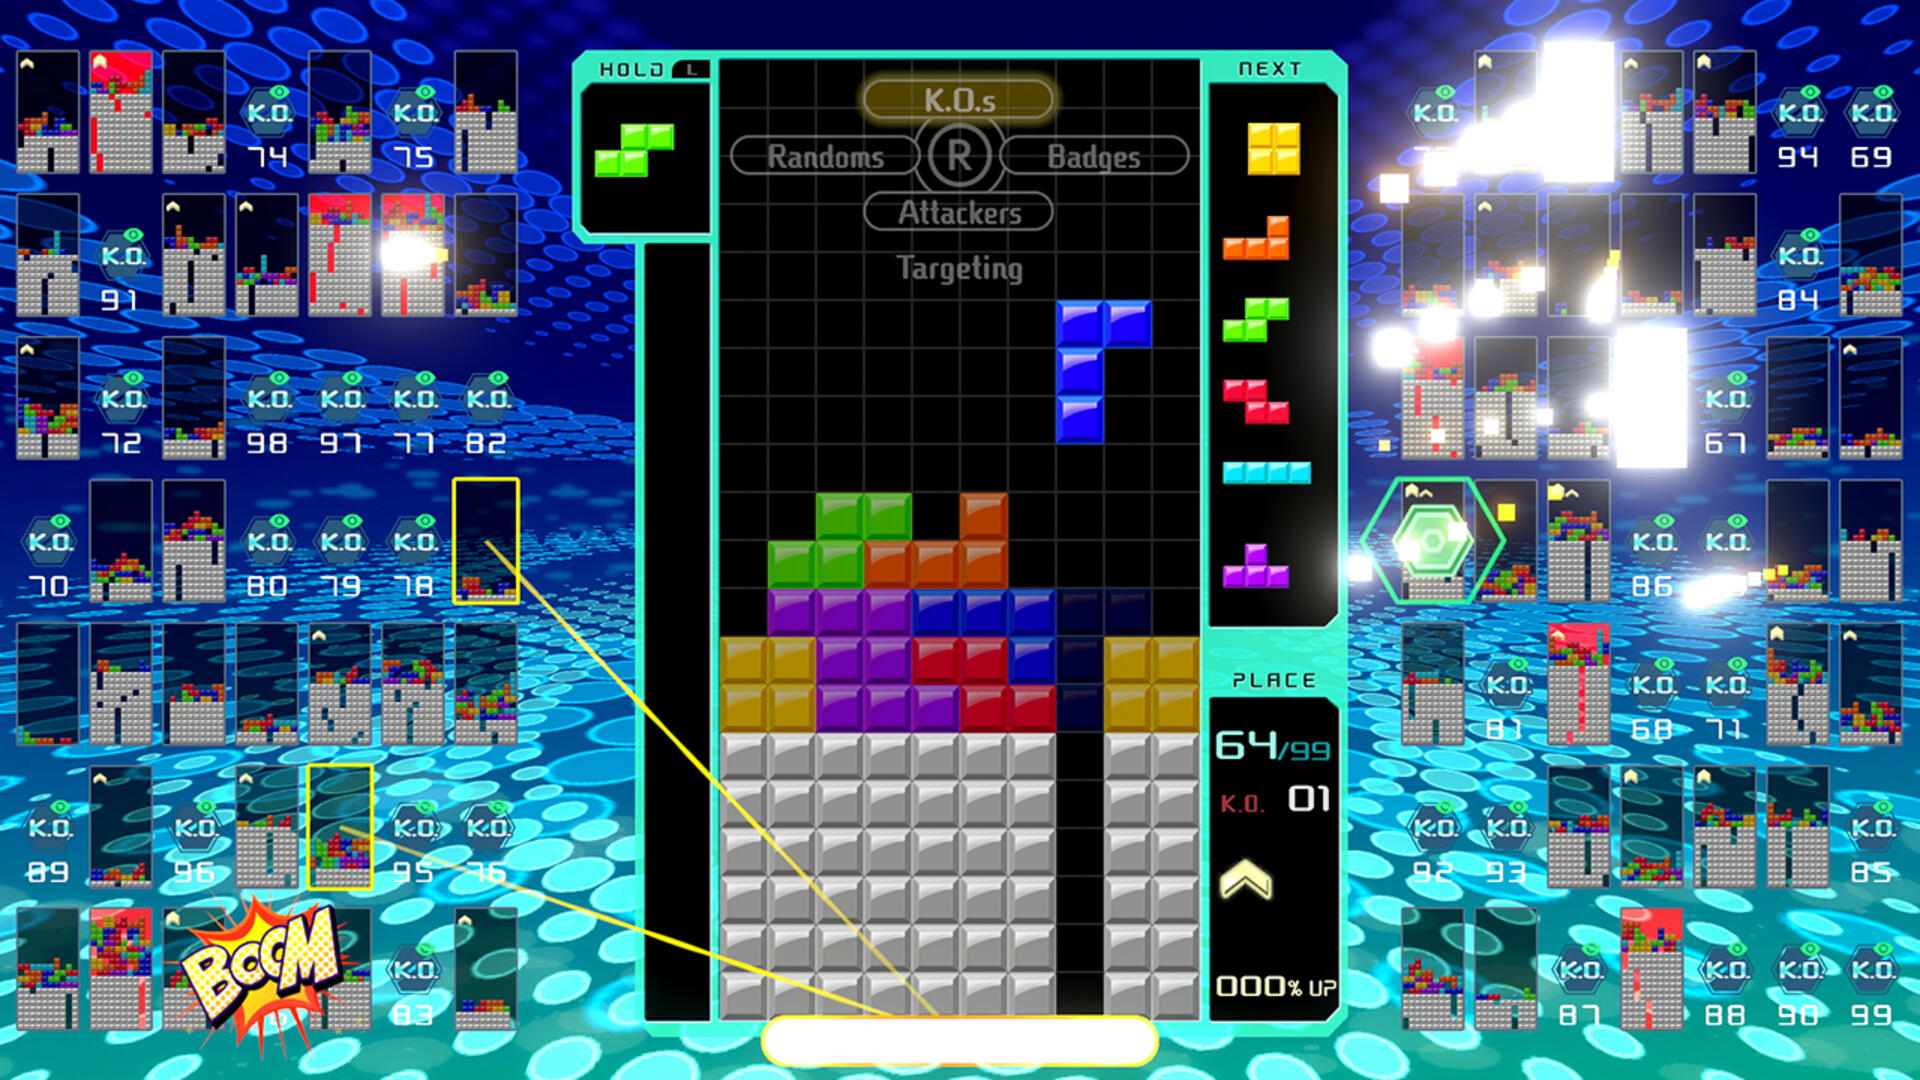 Tetris 99 Will Dole Out Super Kirby Clash Currency in a Nintendo F2P Mash-Up